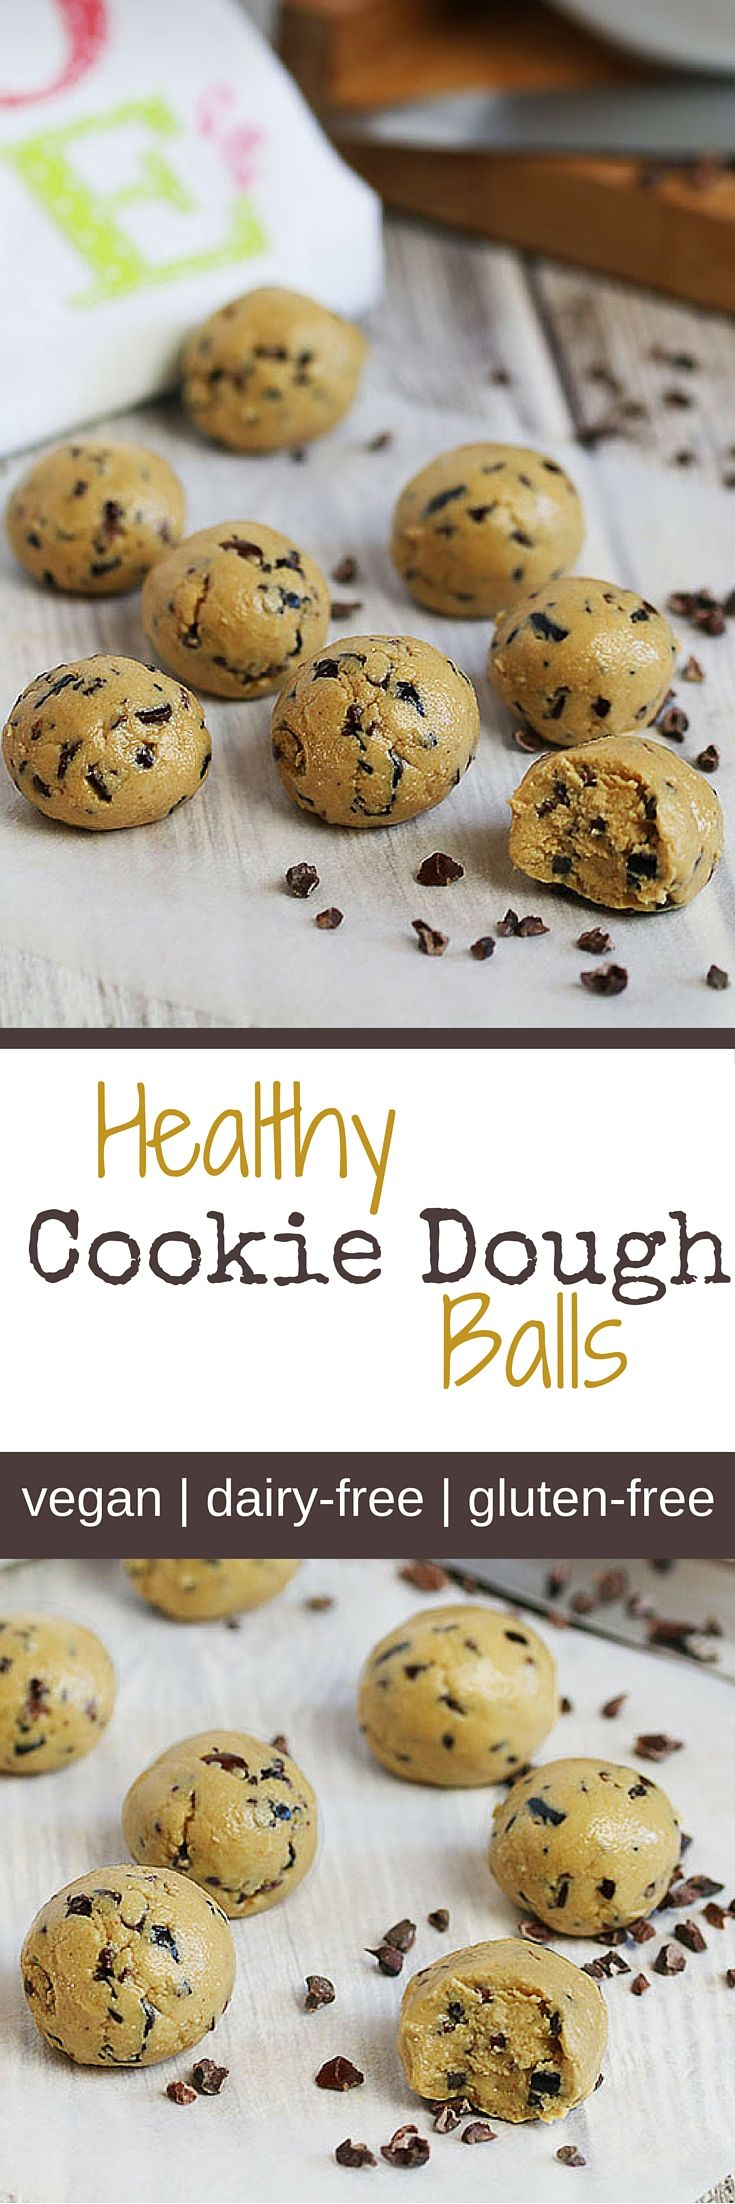 These healthy Cookie Dough Balls are vegan, dairy-free and gluten-free.